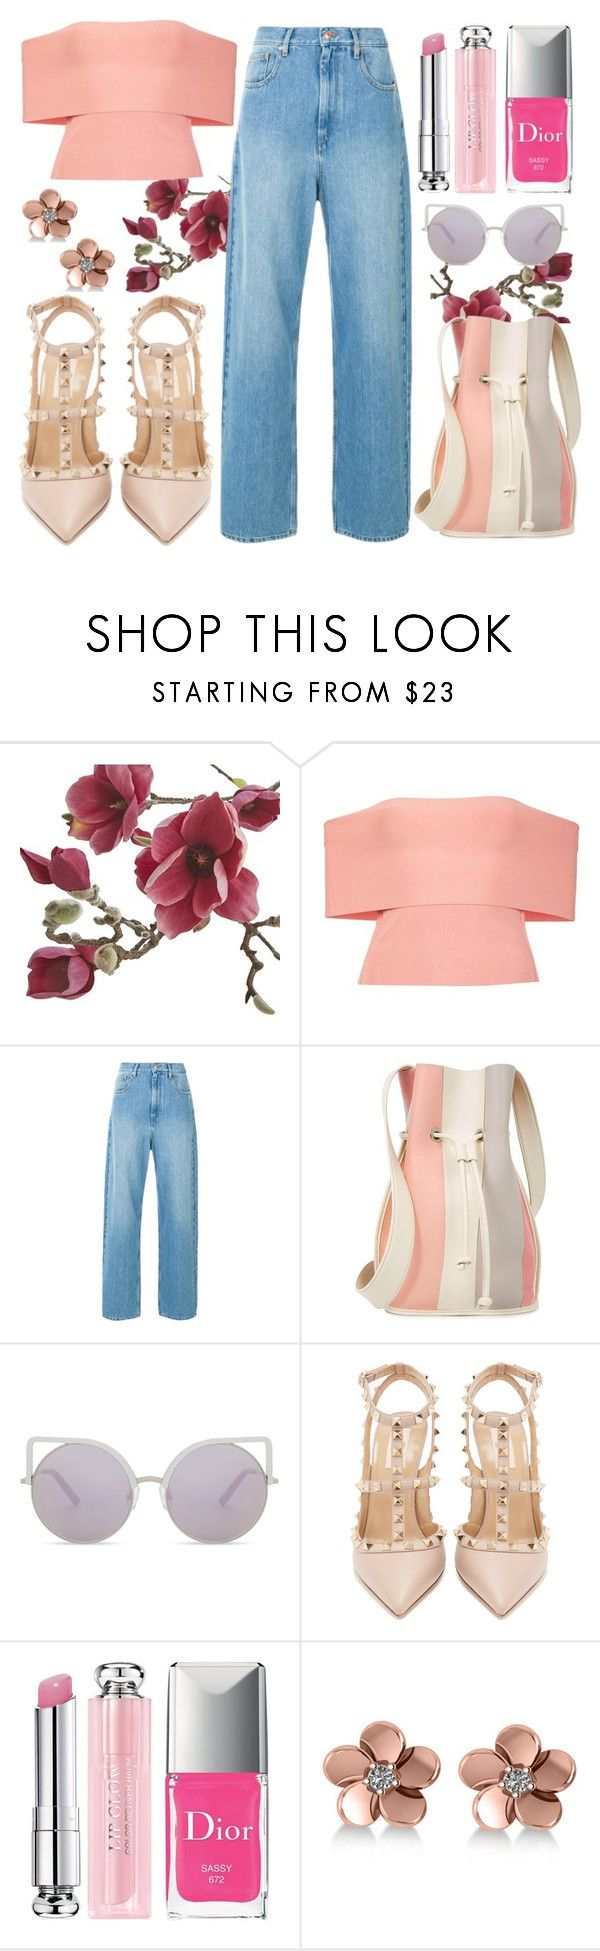 """""""Flowers In The Garden"""" by annelisamilano ❤ liked on Polyvore featuring Crate and Barrel, T By Alexander Wang, 10 Crosby Derek Lam, Matthew Williamson, Valentino, Christian Dior and Allurez"""